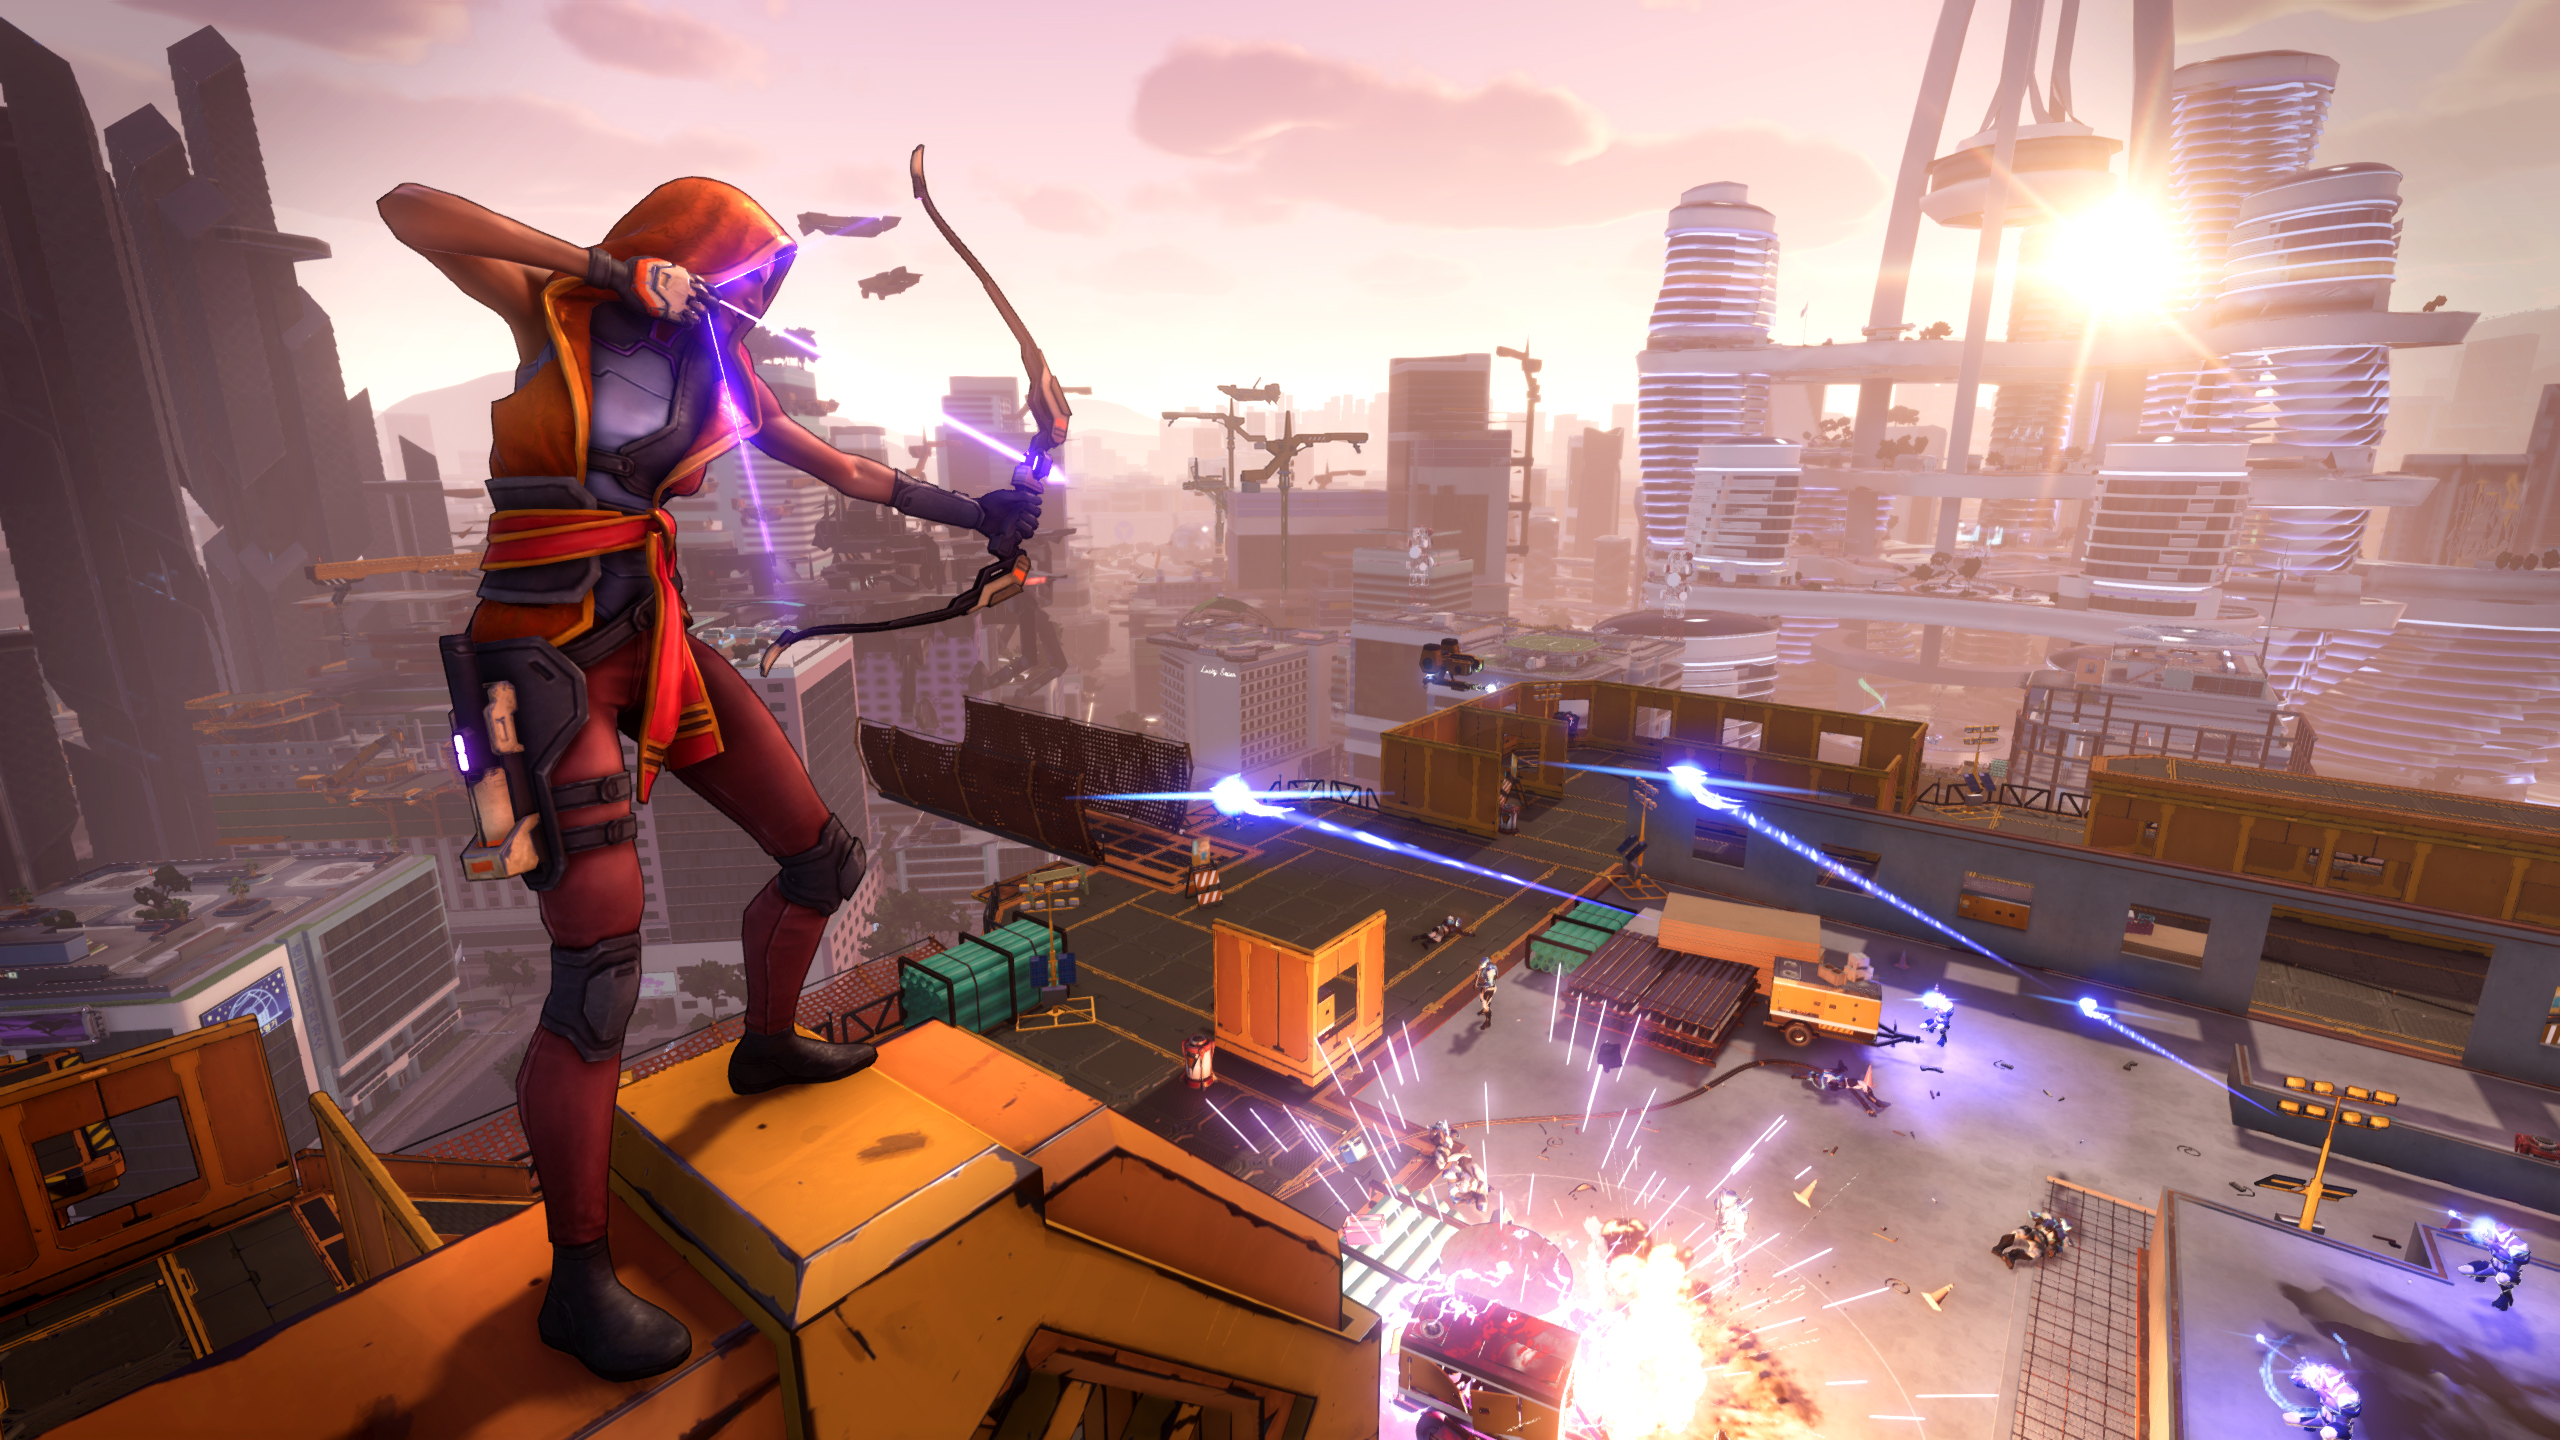 Обои game, weapon, gun, girl, Agents of Mayhem. Игры foto 17